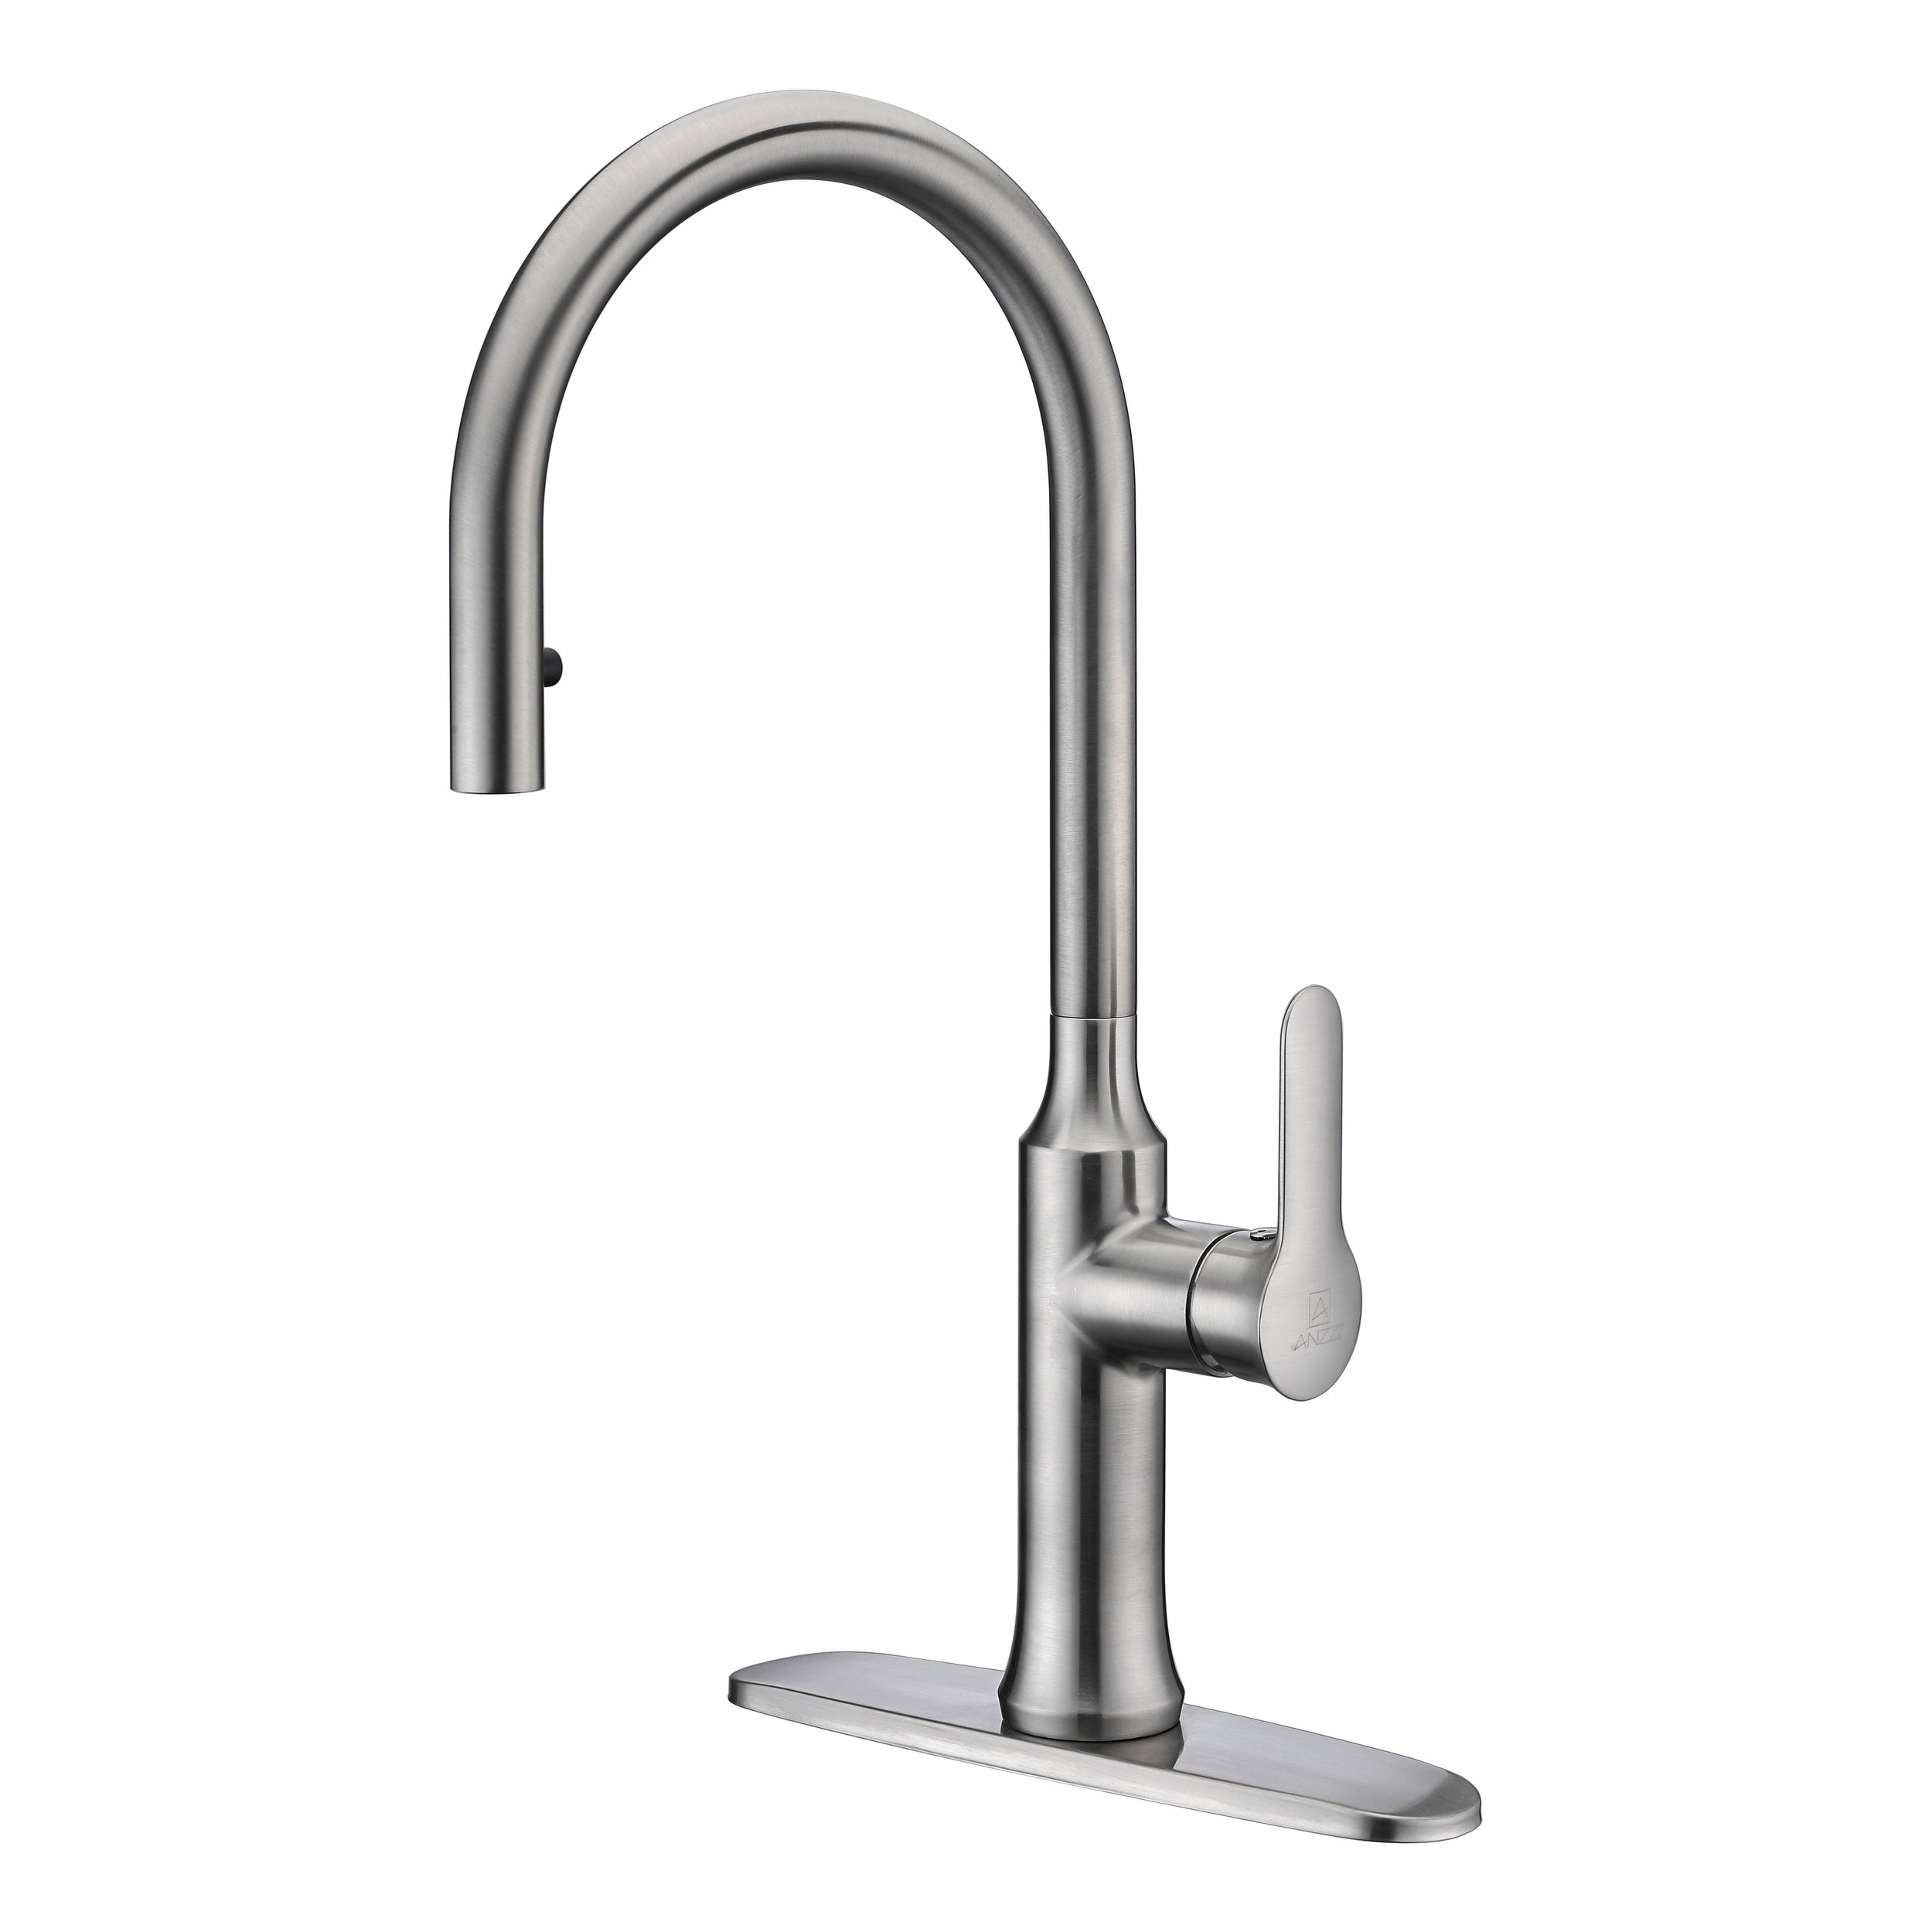 ANZZI Cresent Single Handle Pull-Down Sprayer Kitchen Faucet in Brushed  Nickel - Brushed nickel